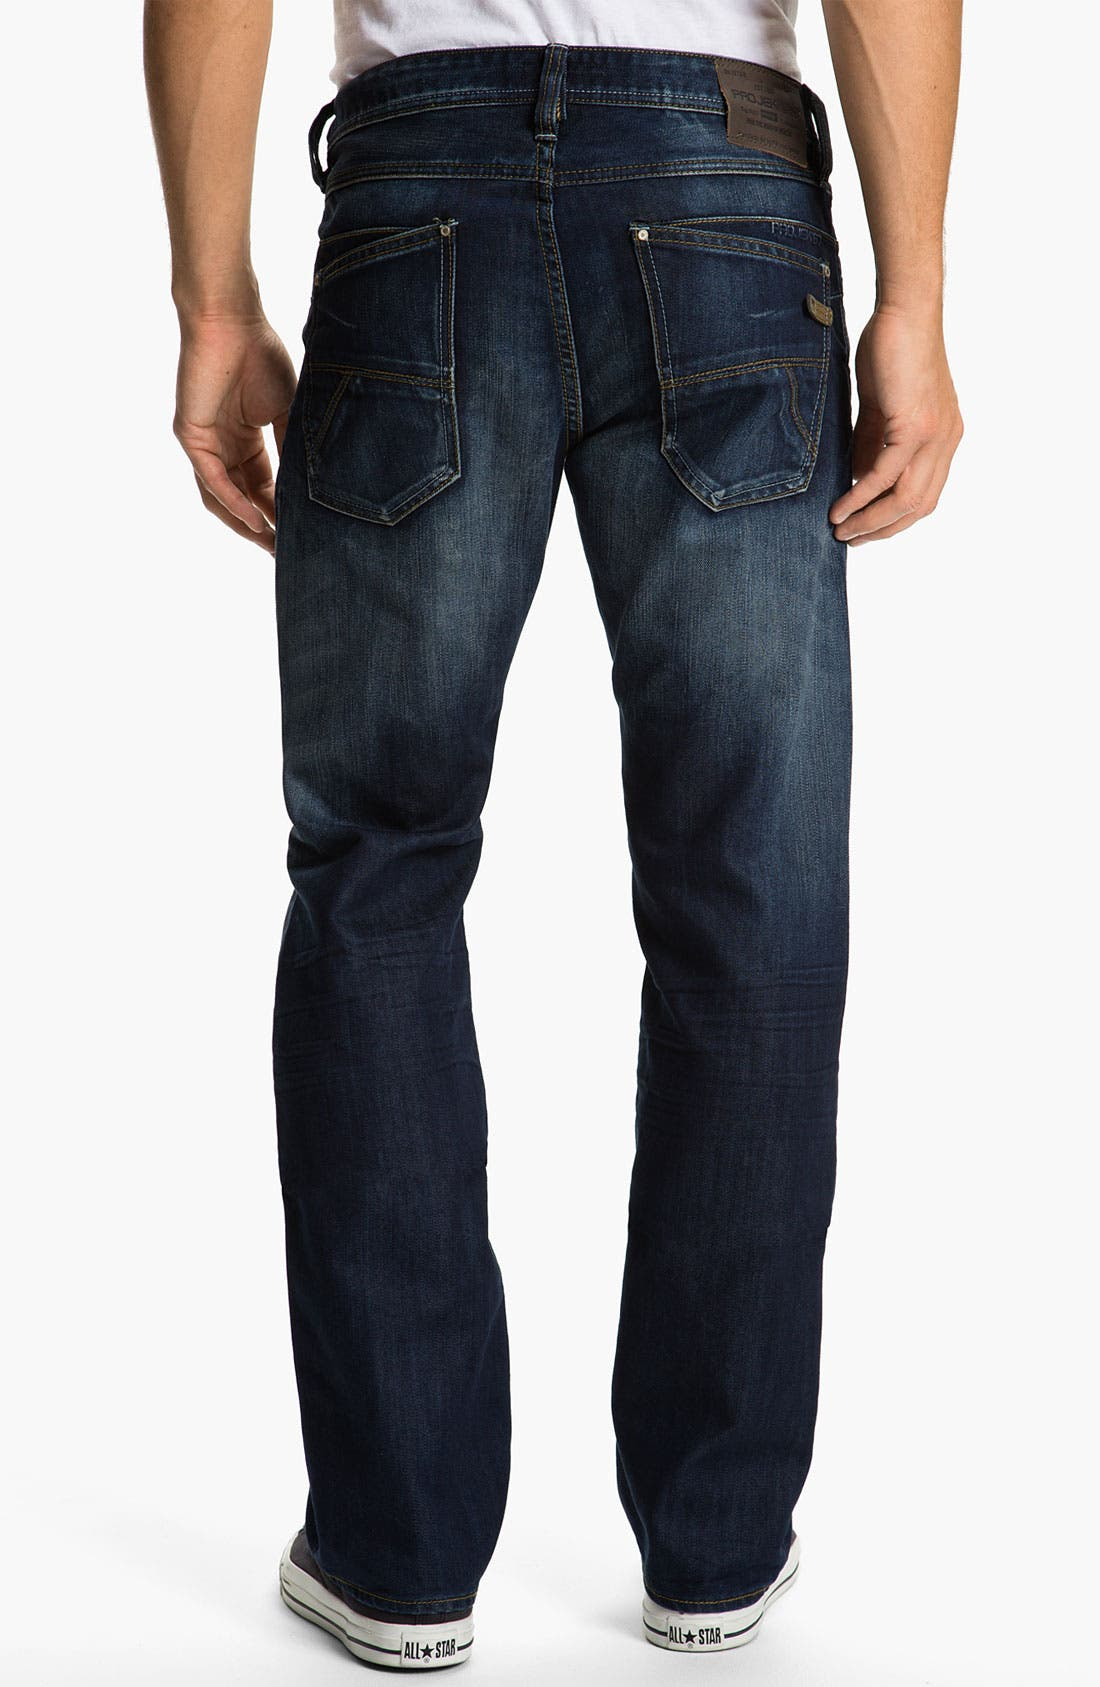 Main Image - Projek Raw Relaxed Straight Leg Jeans (Blue)